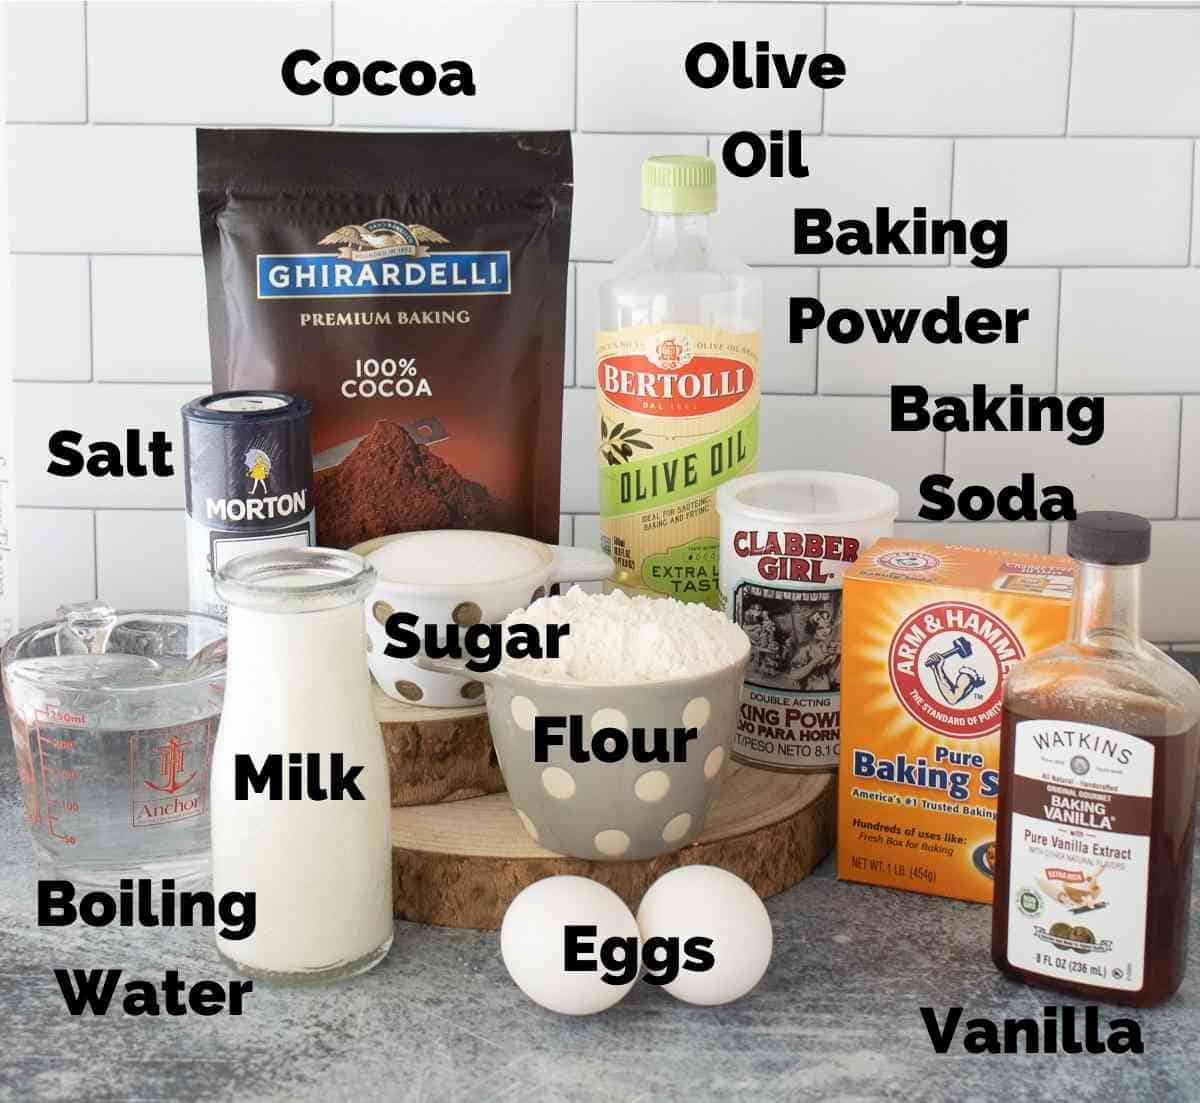 Ingredients for chocolate cake.